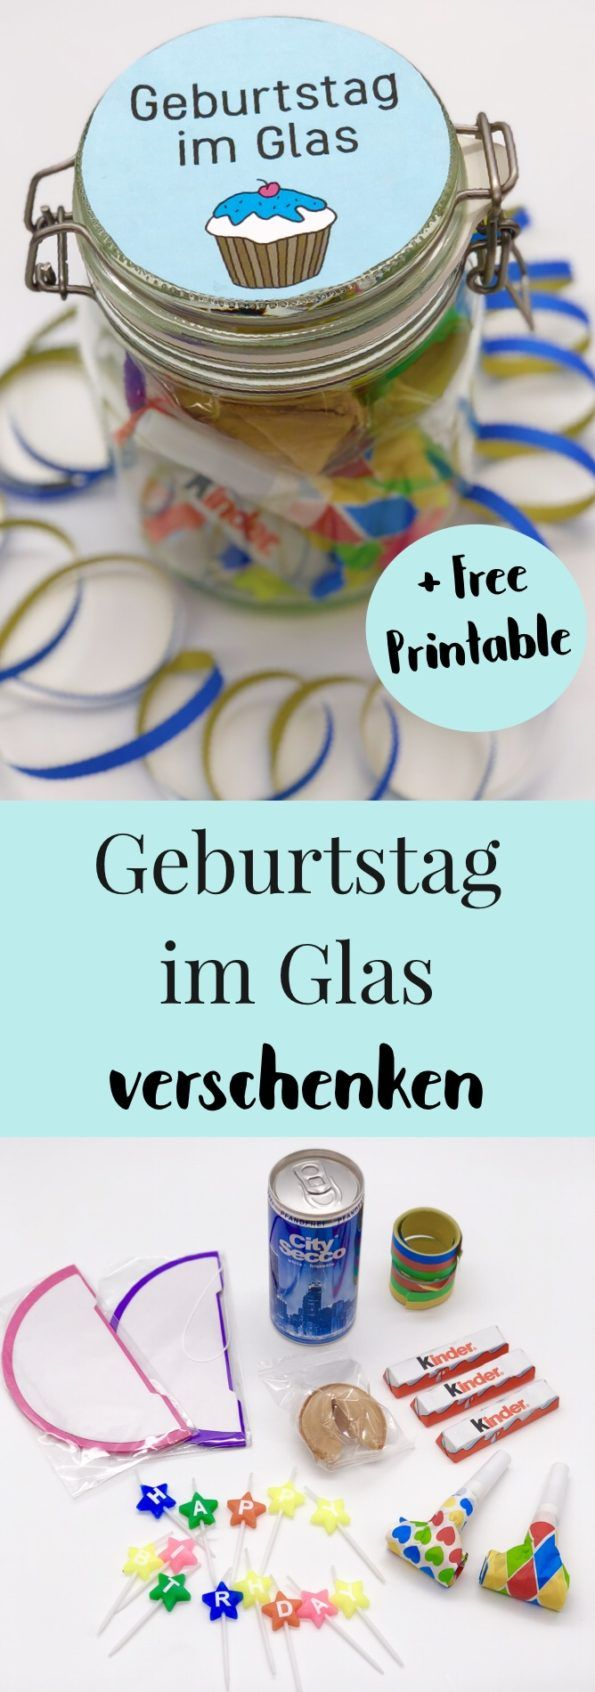 diy geschenke zum geburtstag einfache geschenkideen im glas upcycling gift and diys. Black Bedroom Furniture Sets. Home Design Ideas